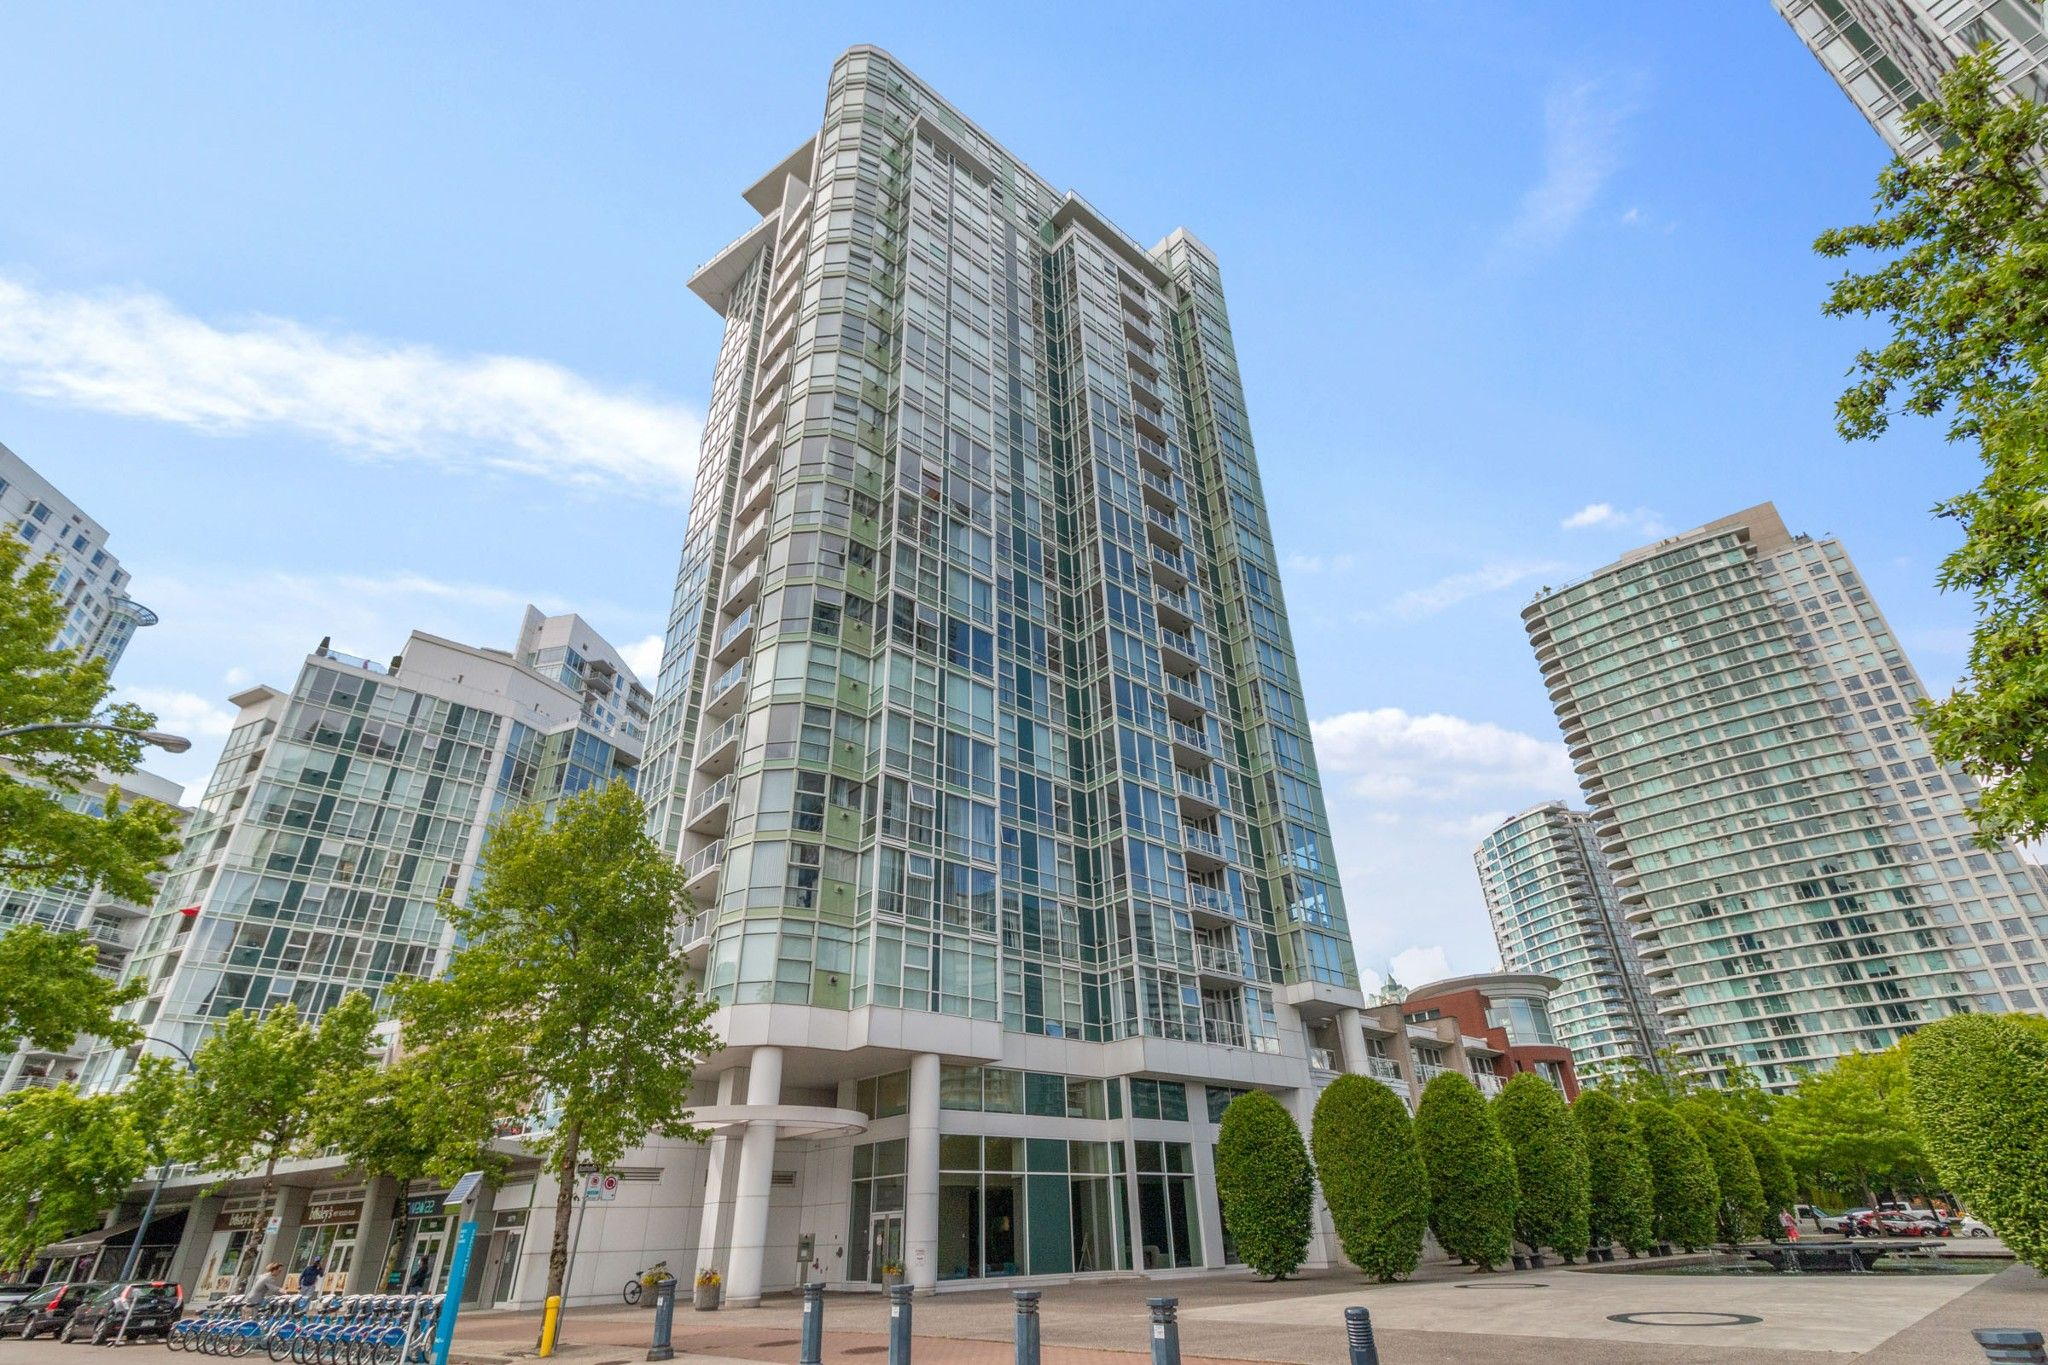 """Main Photo: 805 1077 MARINASIDE Crescent in Vancouver: Yaletown Condo for sale in """"MARINASIDE RESORT RESIDENCES"""" (Vancouver West)  : MLS®# R2582229"""